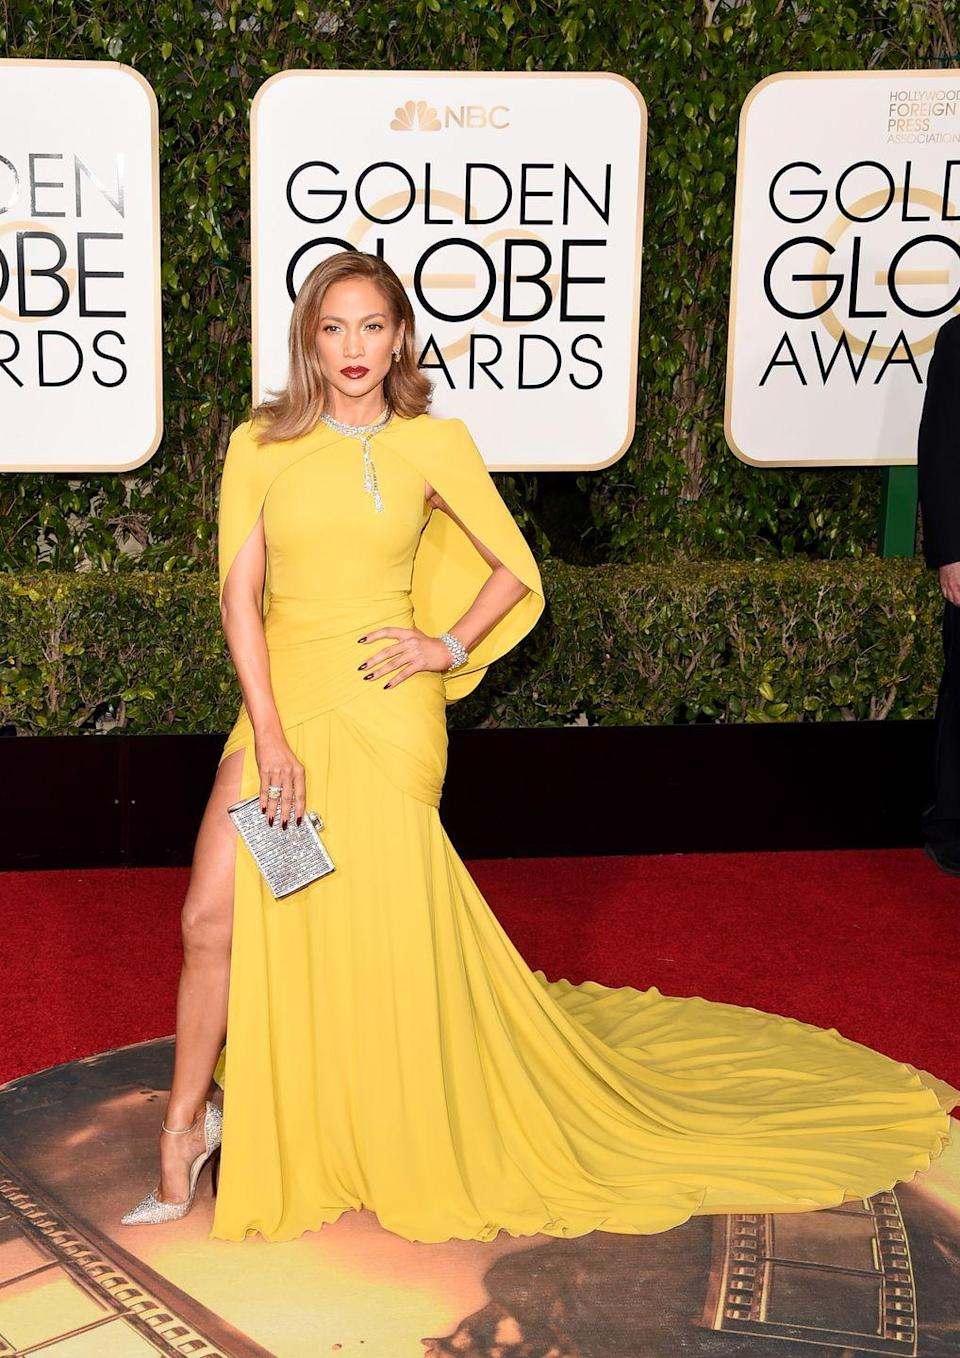 <p><strong>When: </strong>January 2016</p><p><strong>Where:</strong> The Golden Globes</p><p><strong>Wearing: </strong>Giambattista Valli</p>